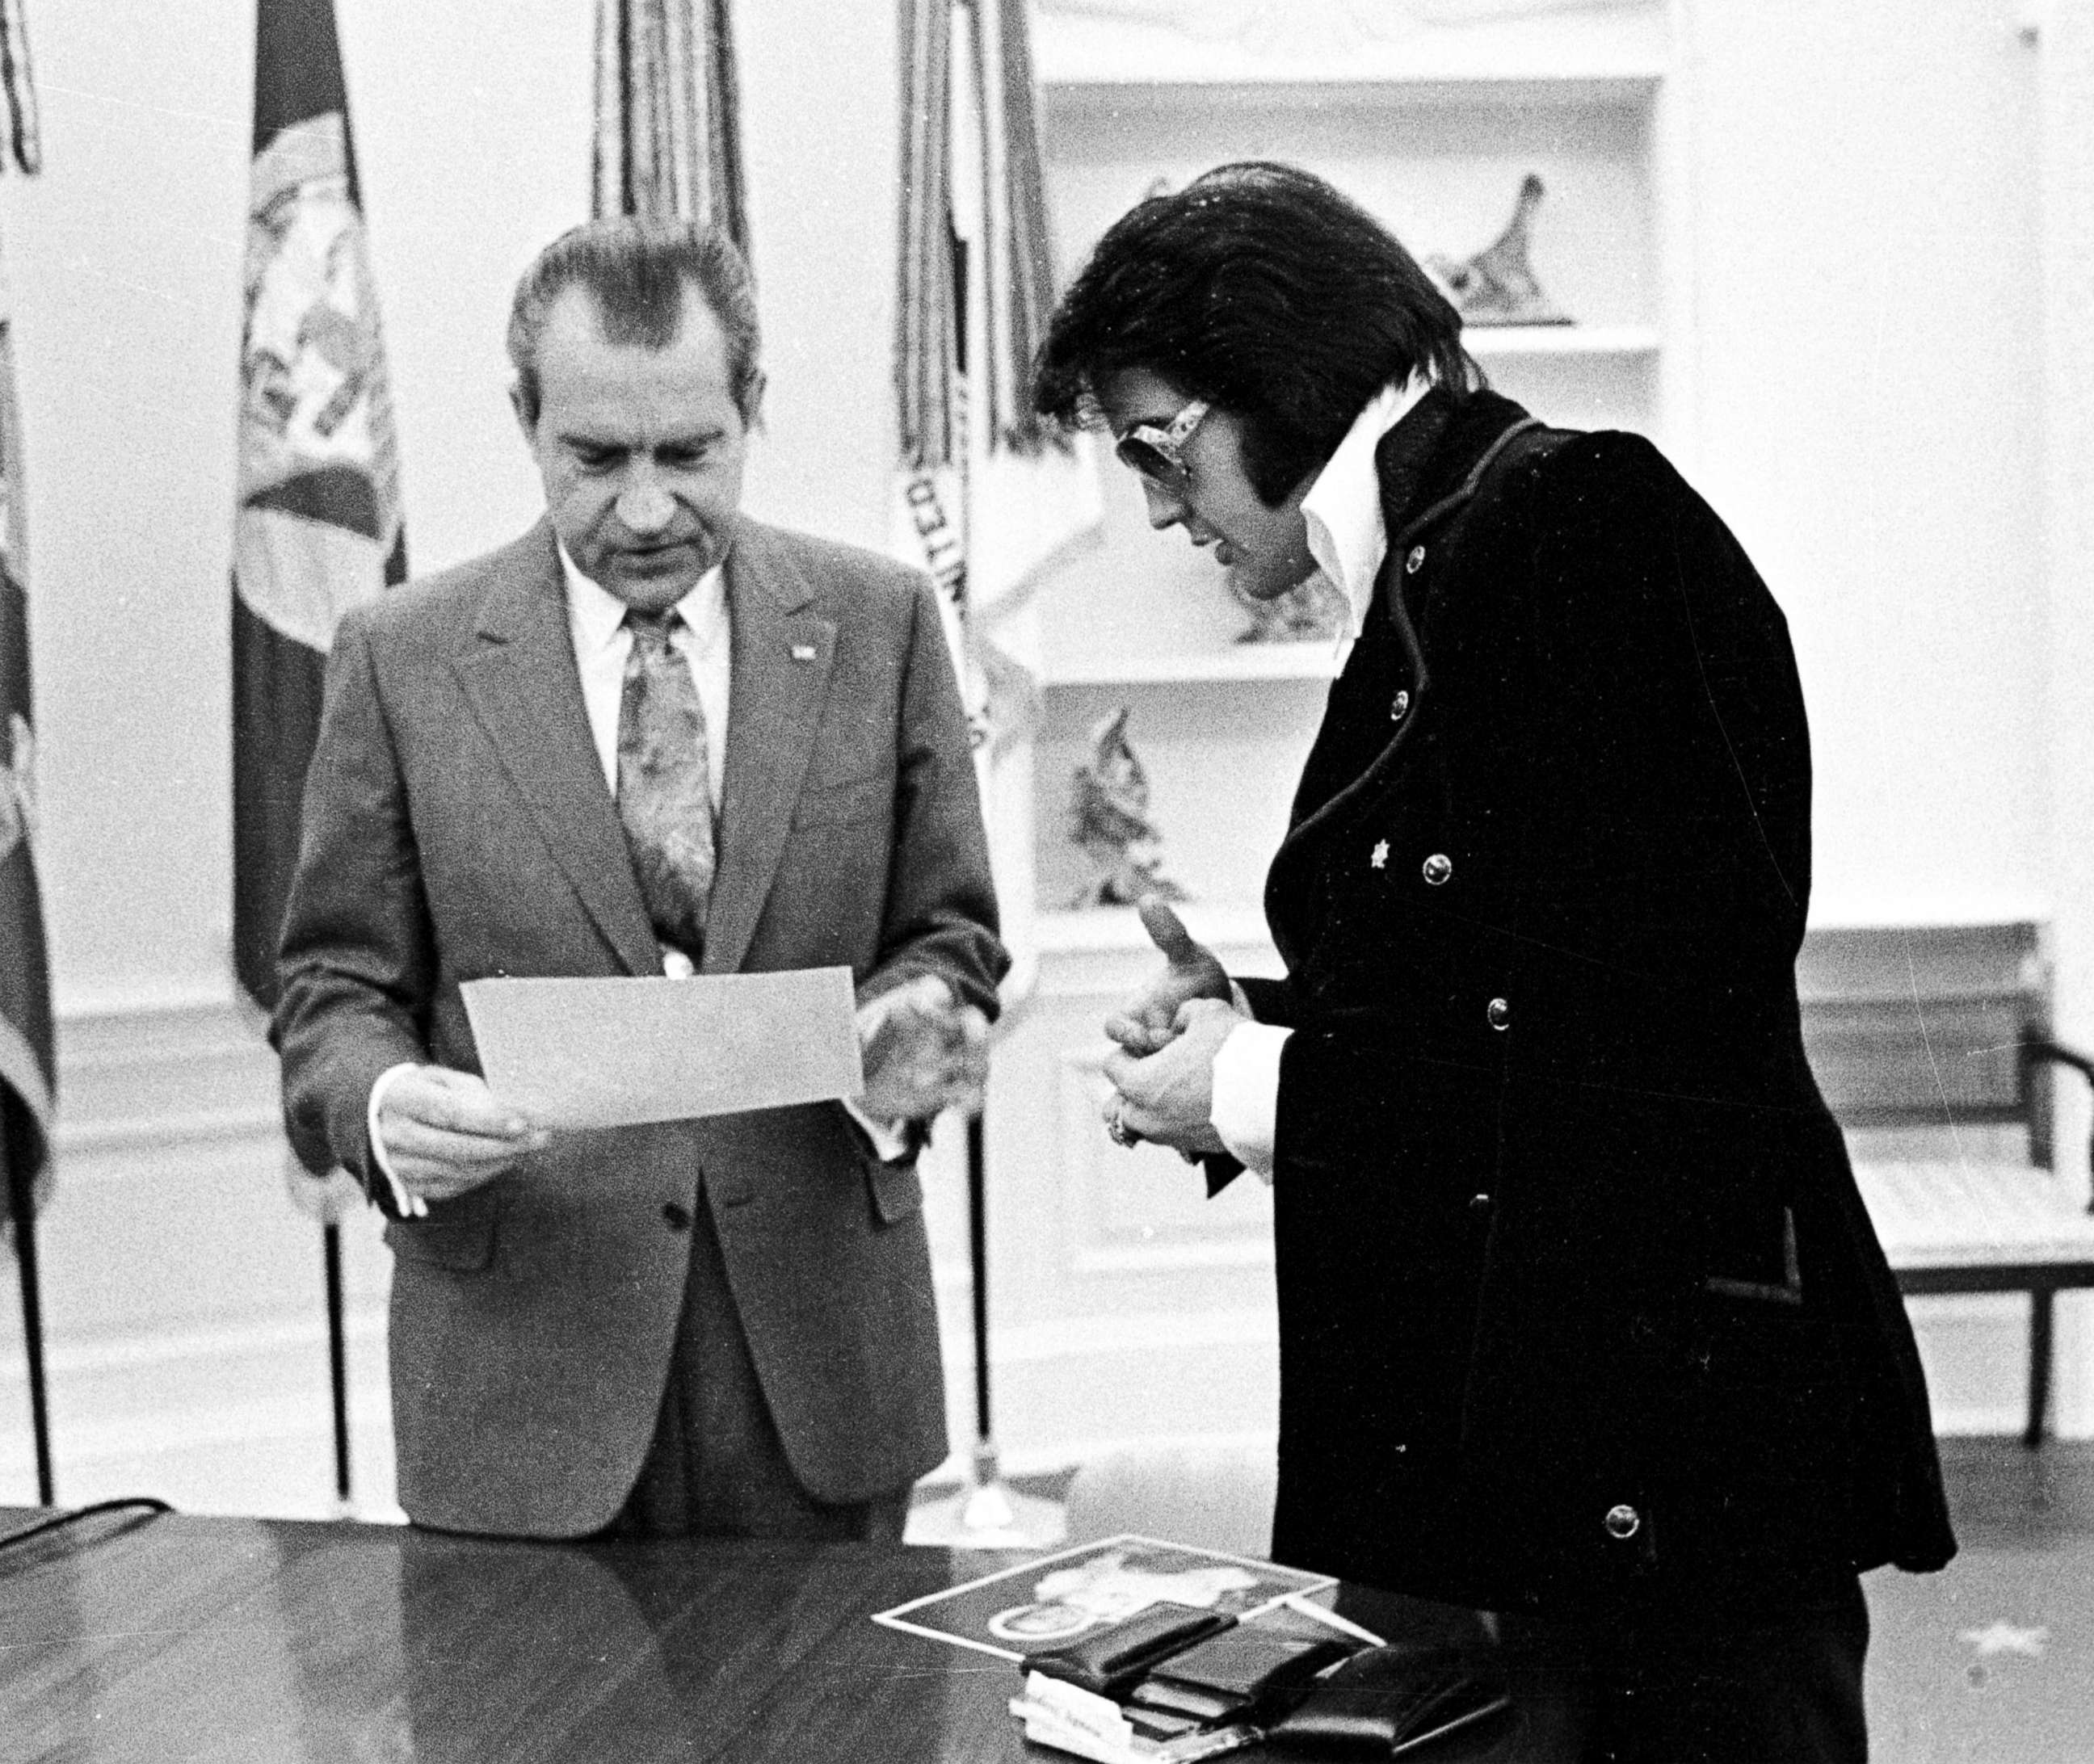 President Richard Nixon meets with Elvis Presley in the Oval Office of the White House, Dec. 21, 1970, in Washington.